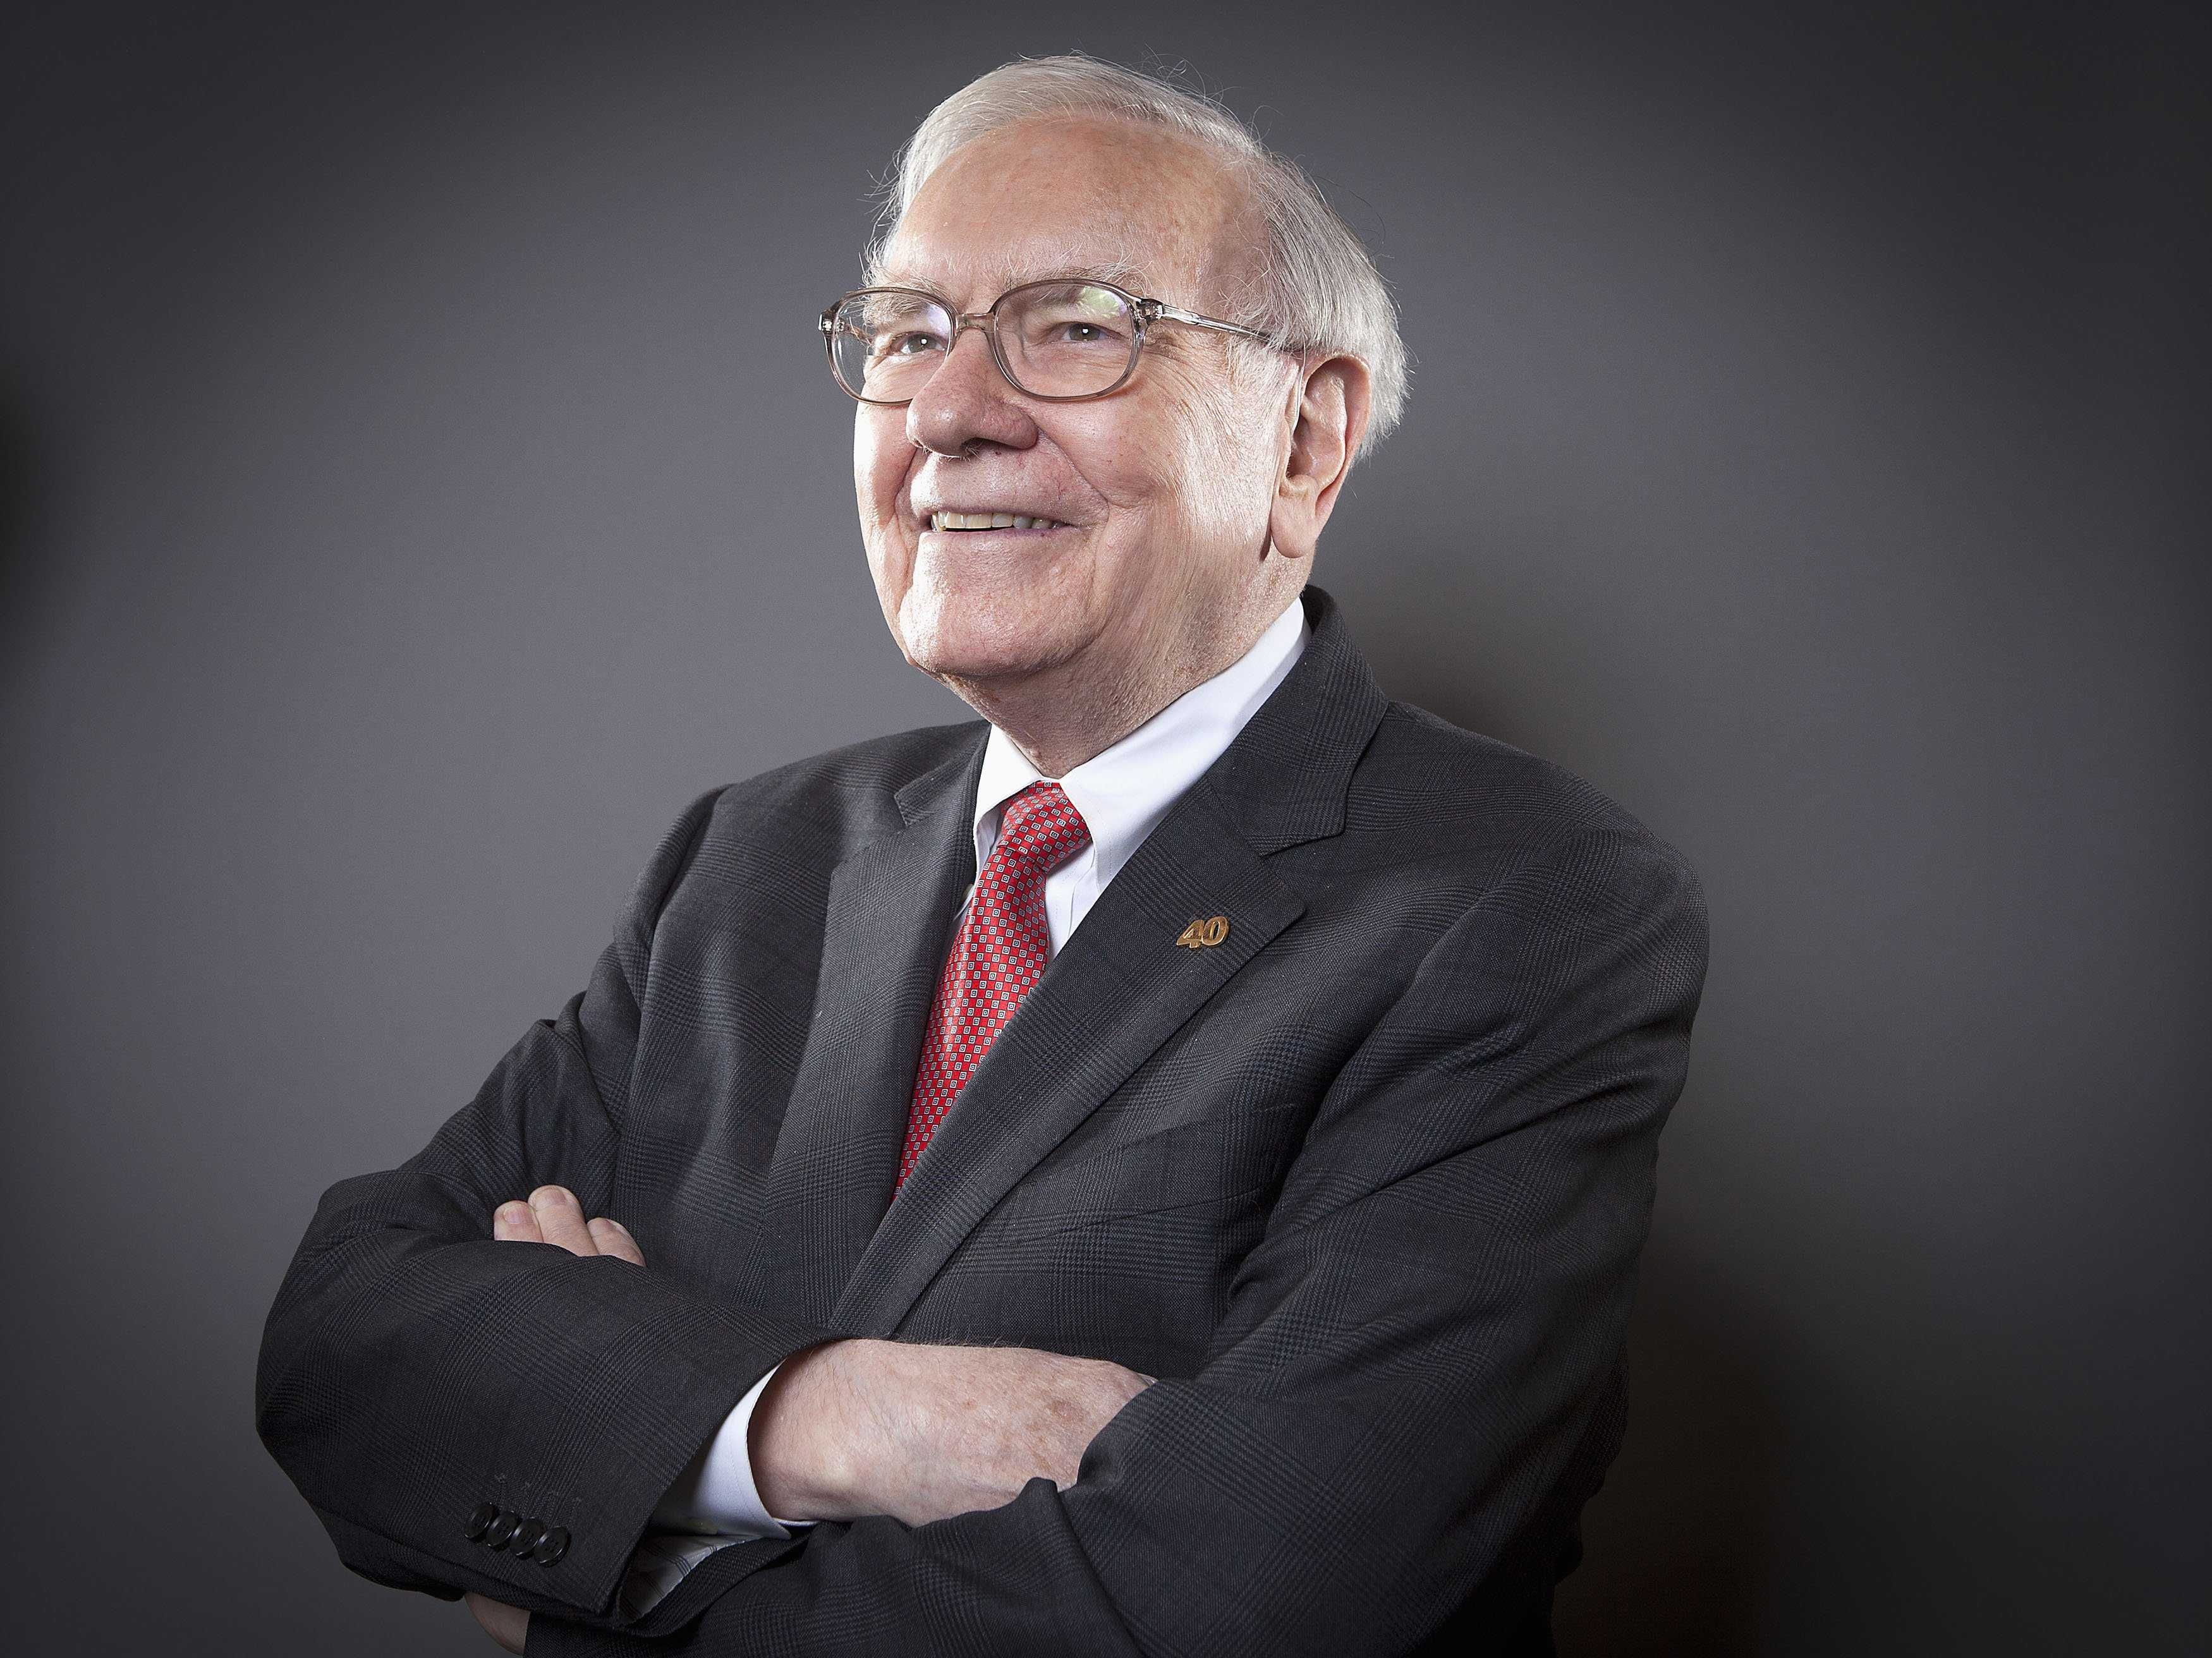 Download free Wallpapers of Warren Buffett in high resolution and high  quality. Also imag… | Warren buffett, Investing money personal finance,  Dave ramsey investing